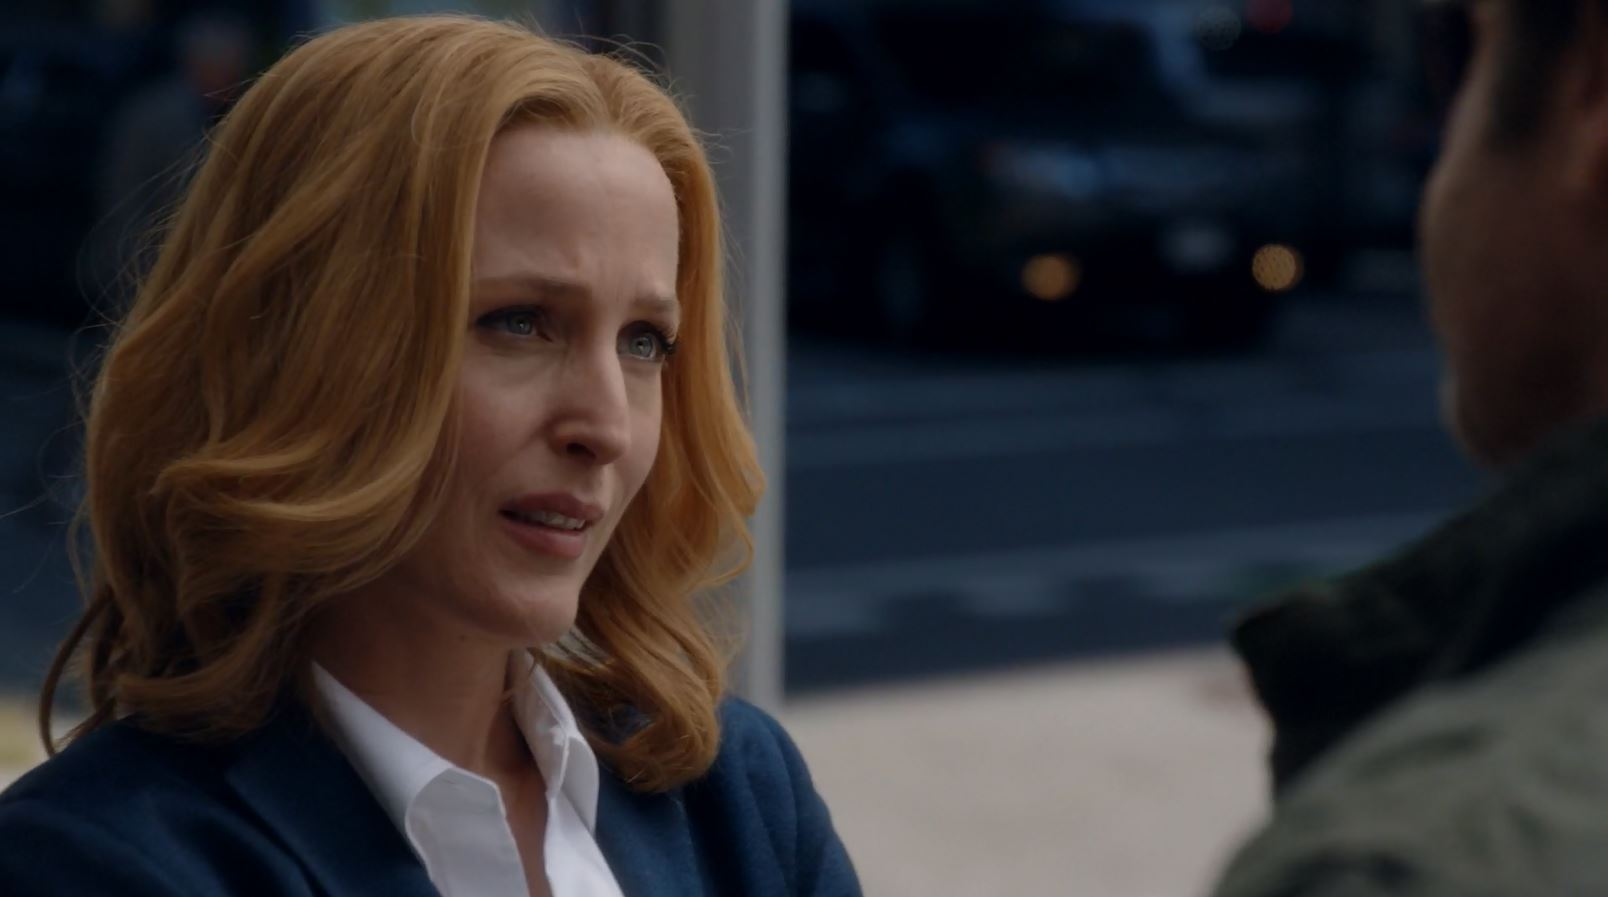 Gillian Anderson as Dana Scully. The X-Files (miniseries) My Struggle Review